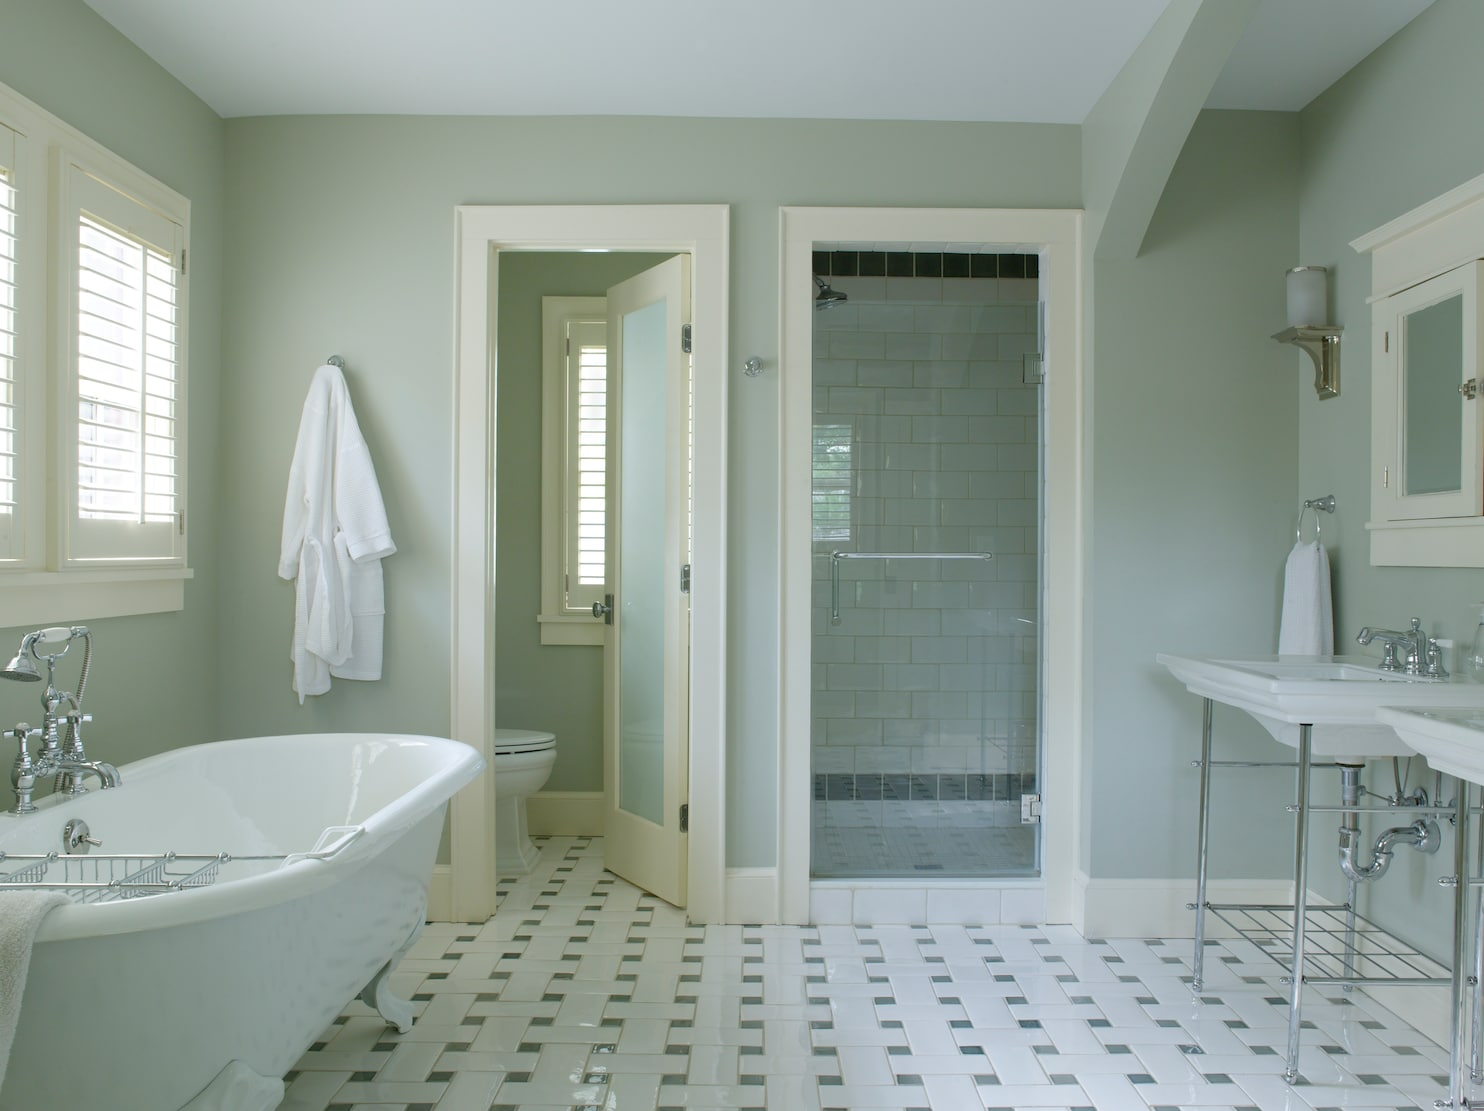 6 dos and donts for decorating a bathroom that wont embarrass you in front of guests  The